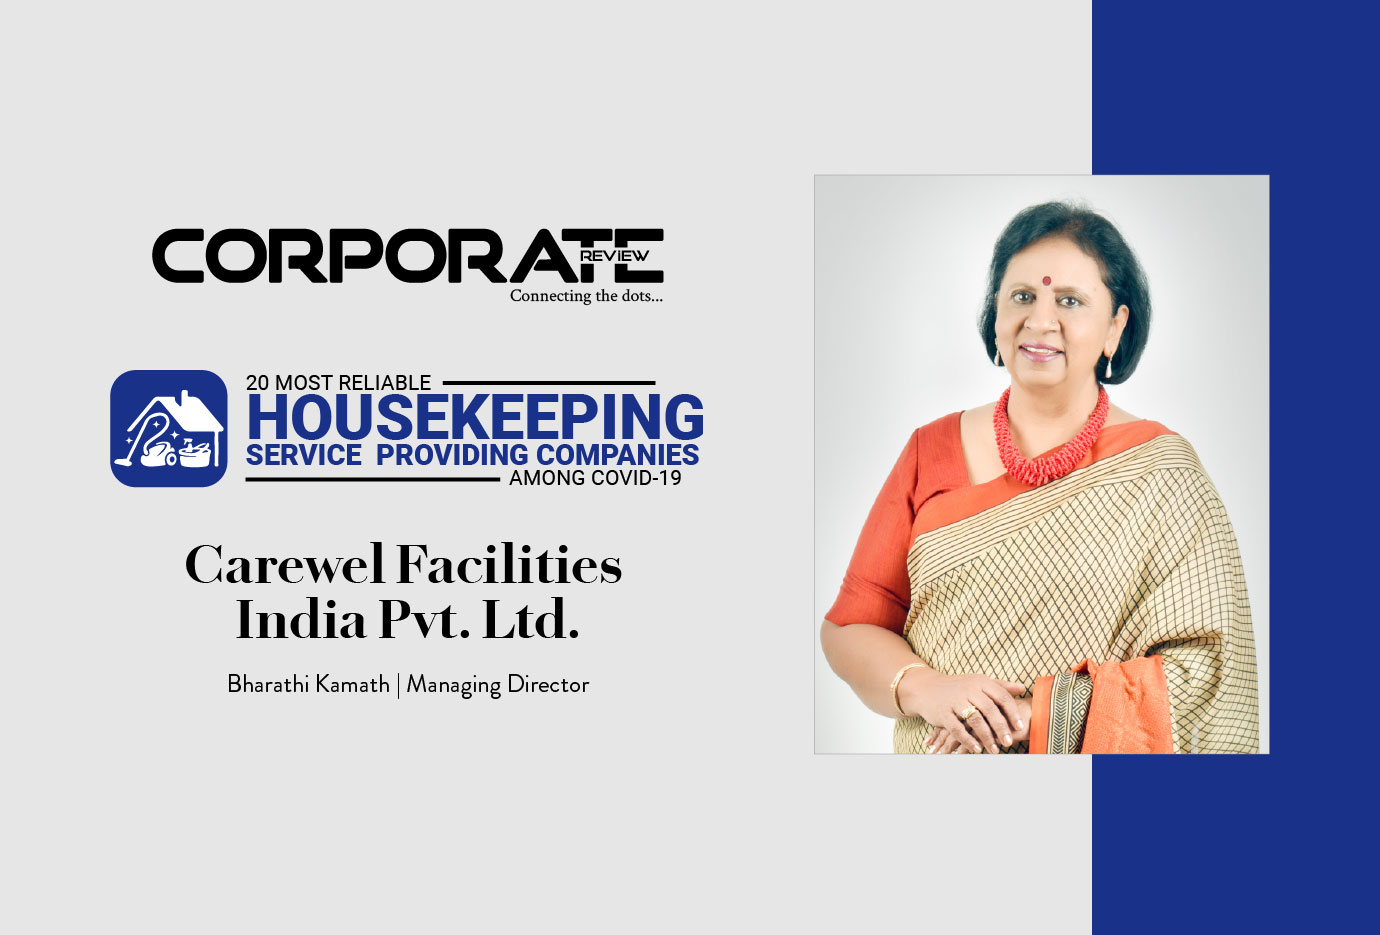 Carewel Facilities Pvt. Ltd.:Creating a Hallmark of Quality in the Housekeeping Space with its unique approach